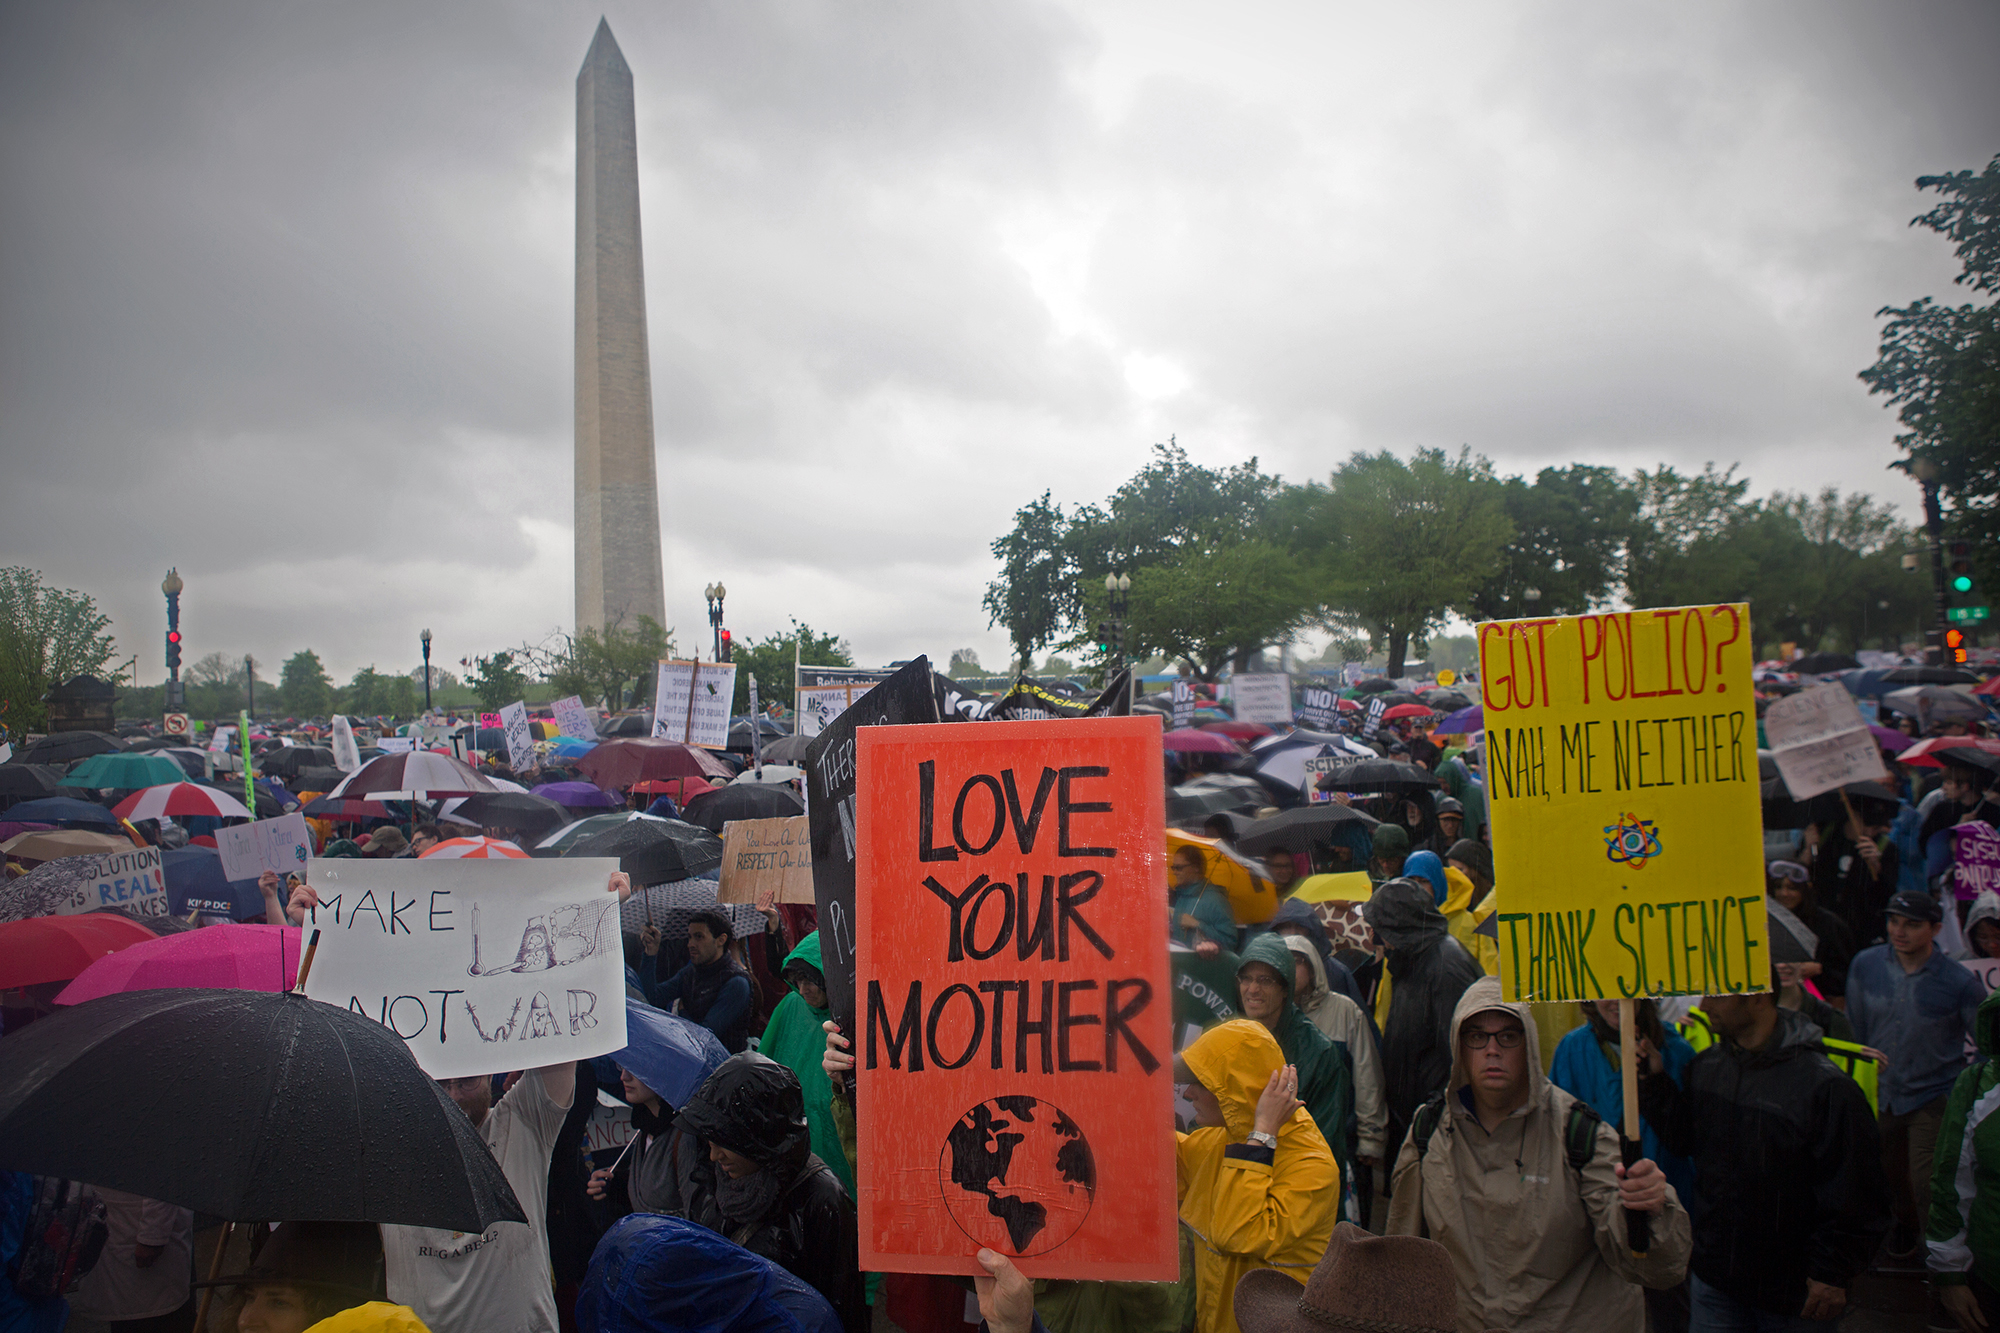 """Love your mother earth,"" one sign reads at the Science March in Washington, D.C."